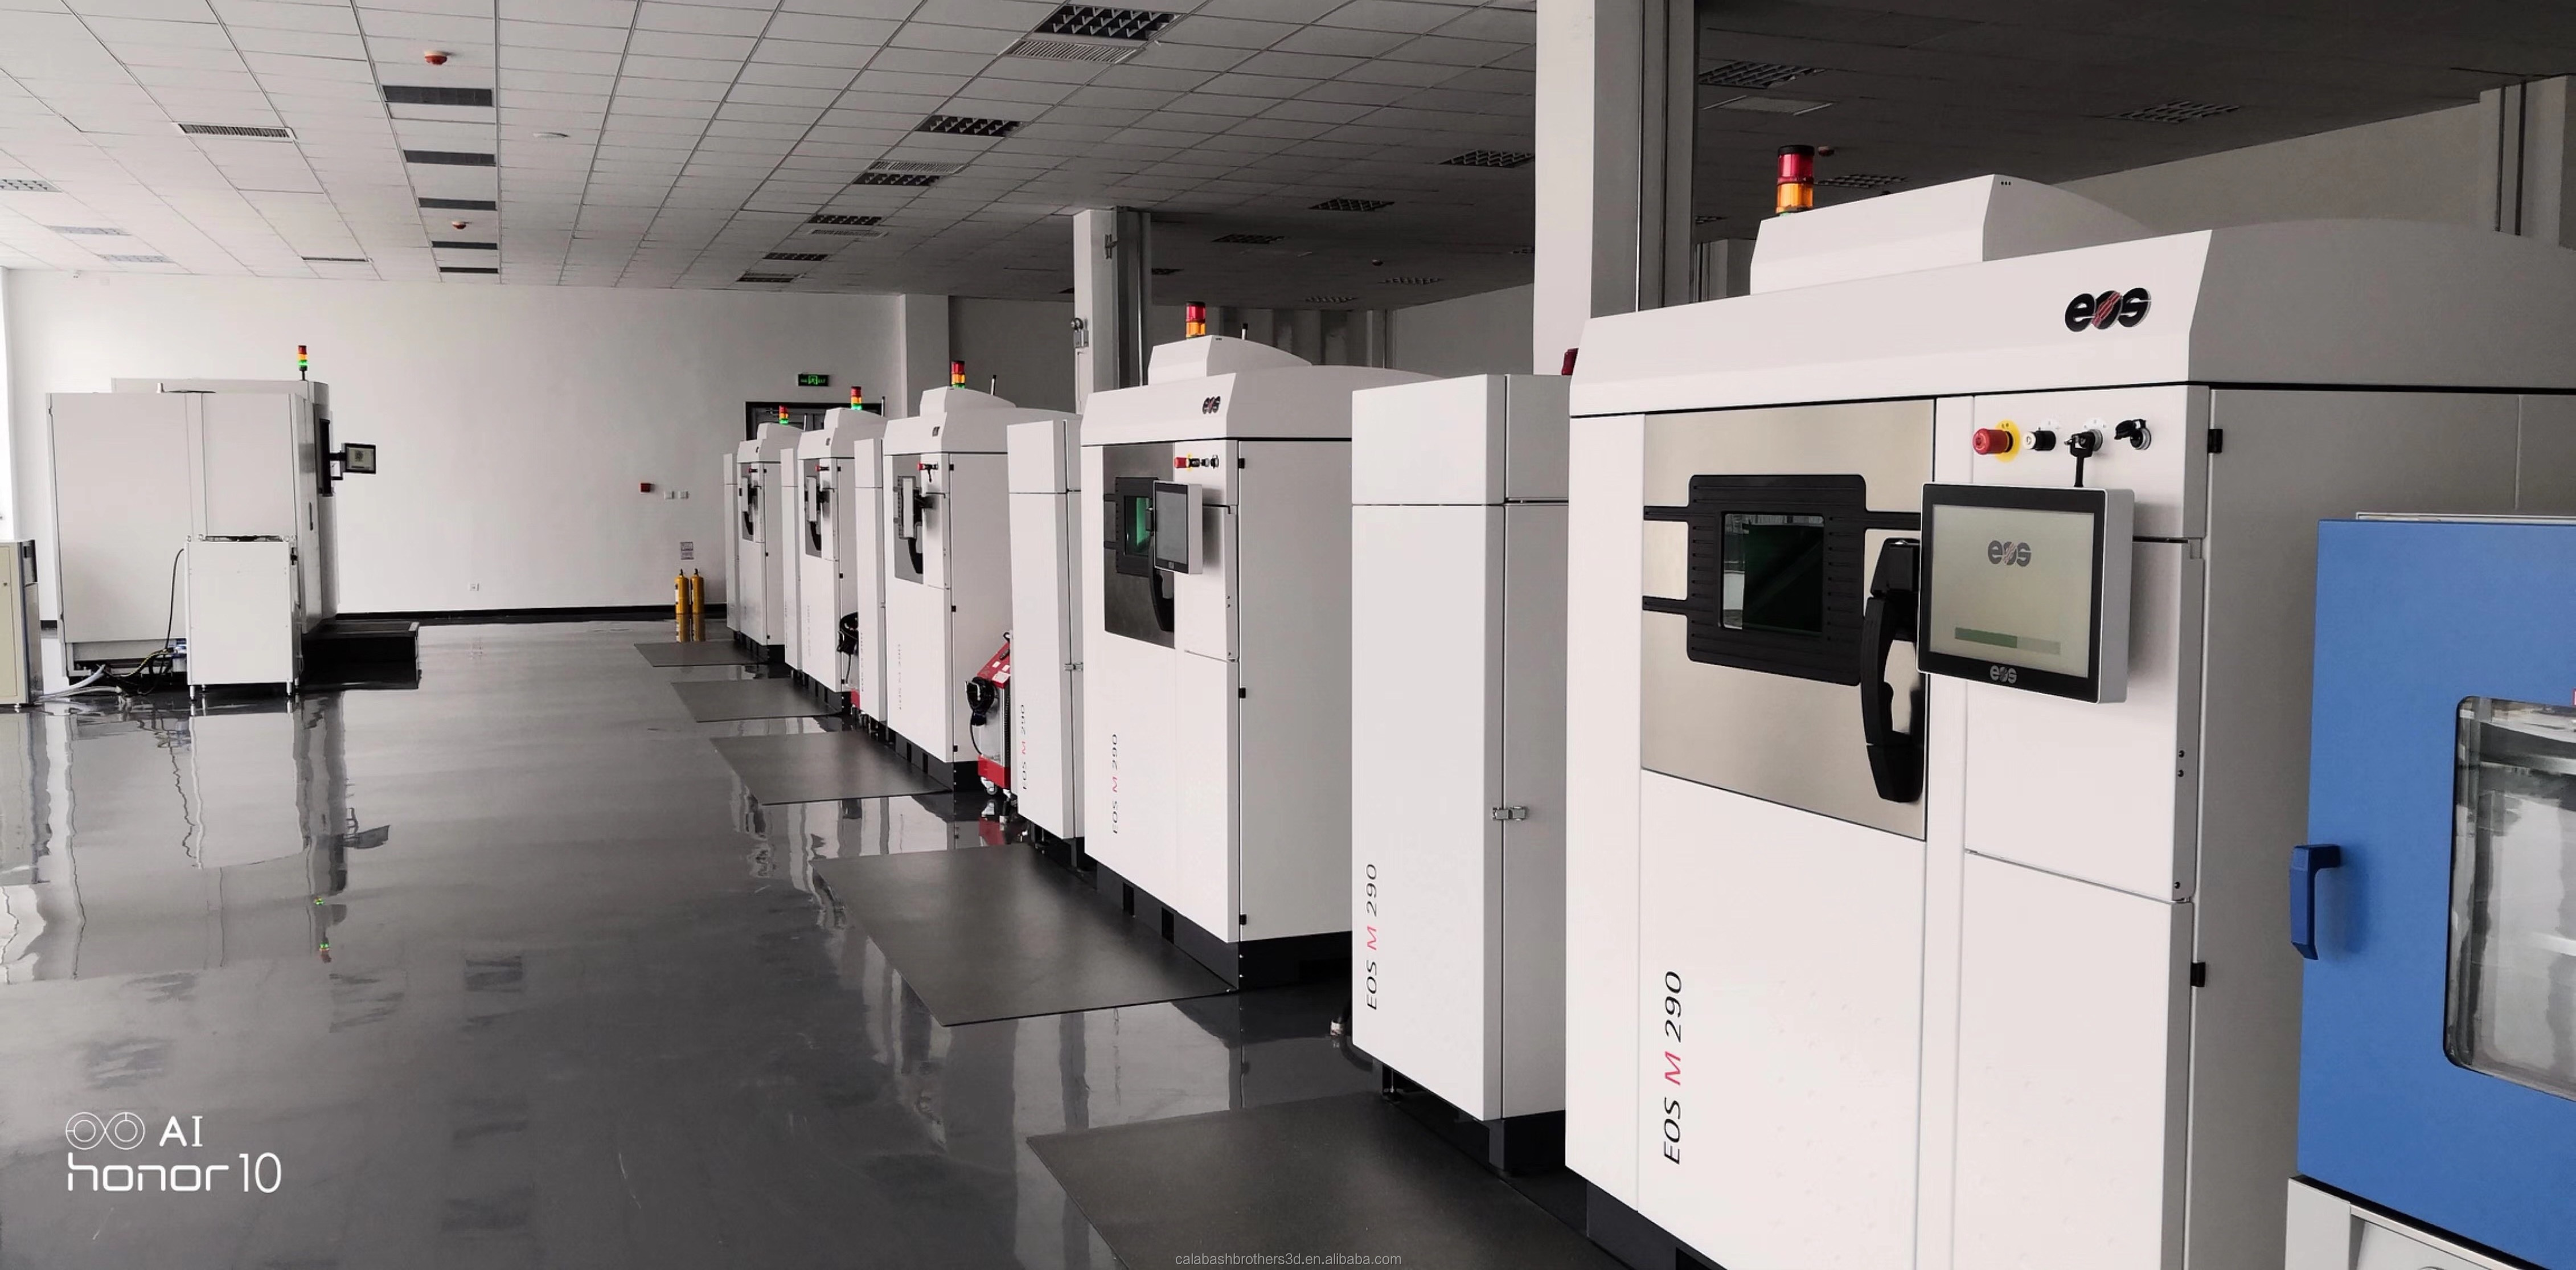 KEINE MOQ Metall Bearbeitung Titan Gold Silber Kupfer Bronze Pulver Metall SLM 3D Druck Rapid Prototyping in China